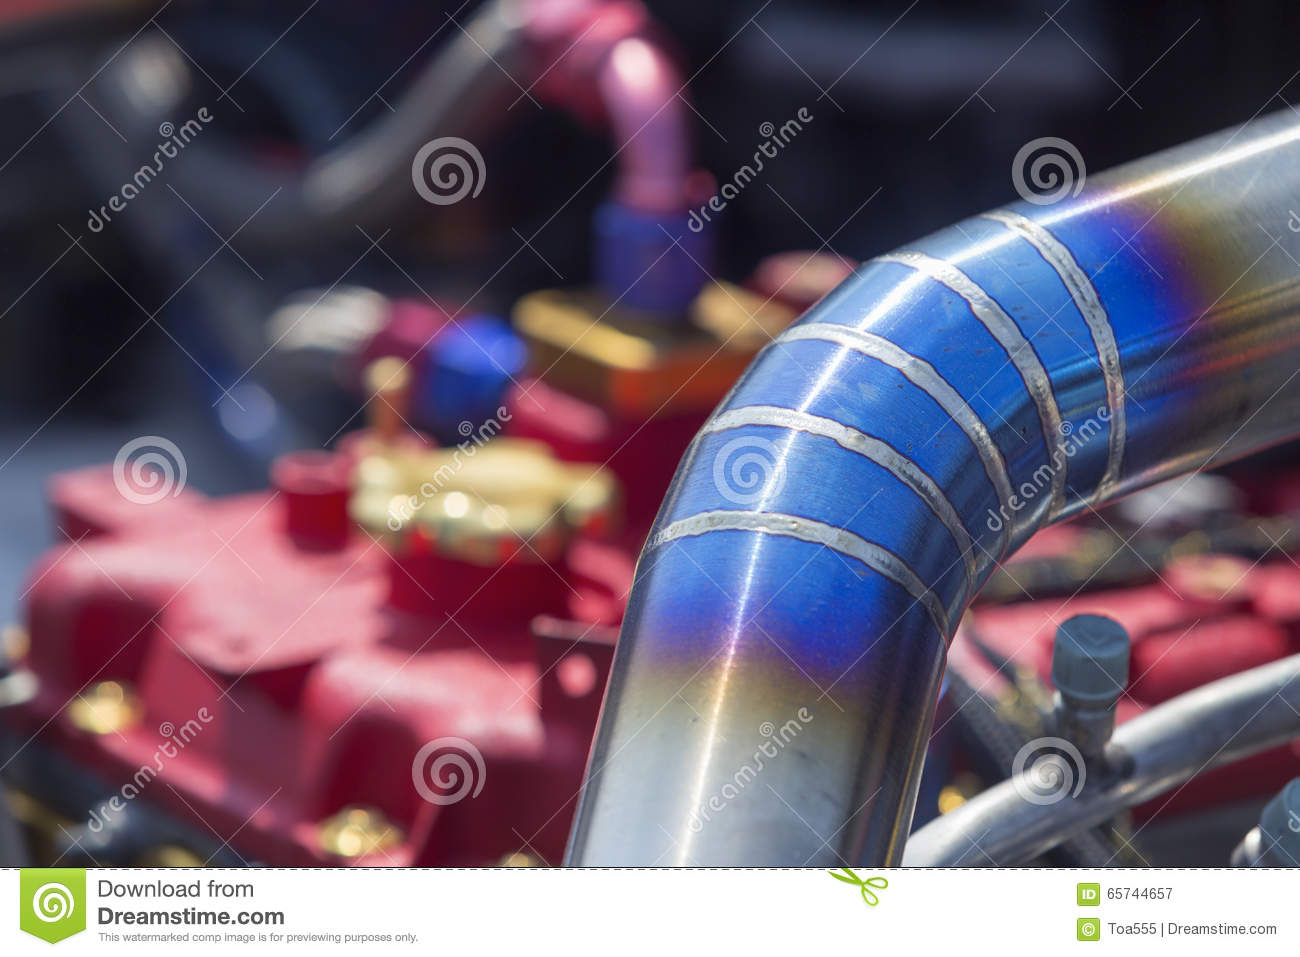 Tig welded stainless steel pipe in racing car stock image